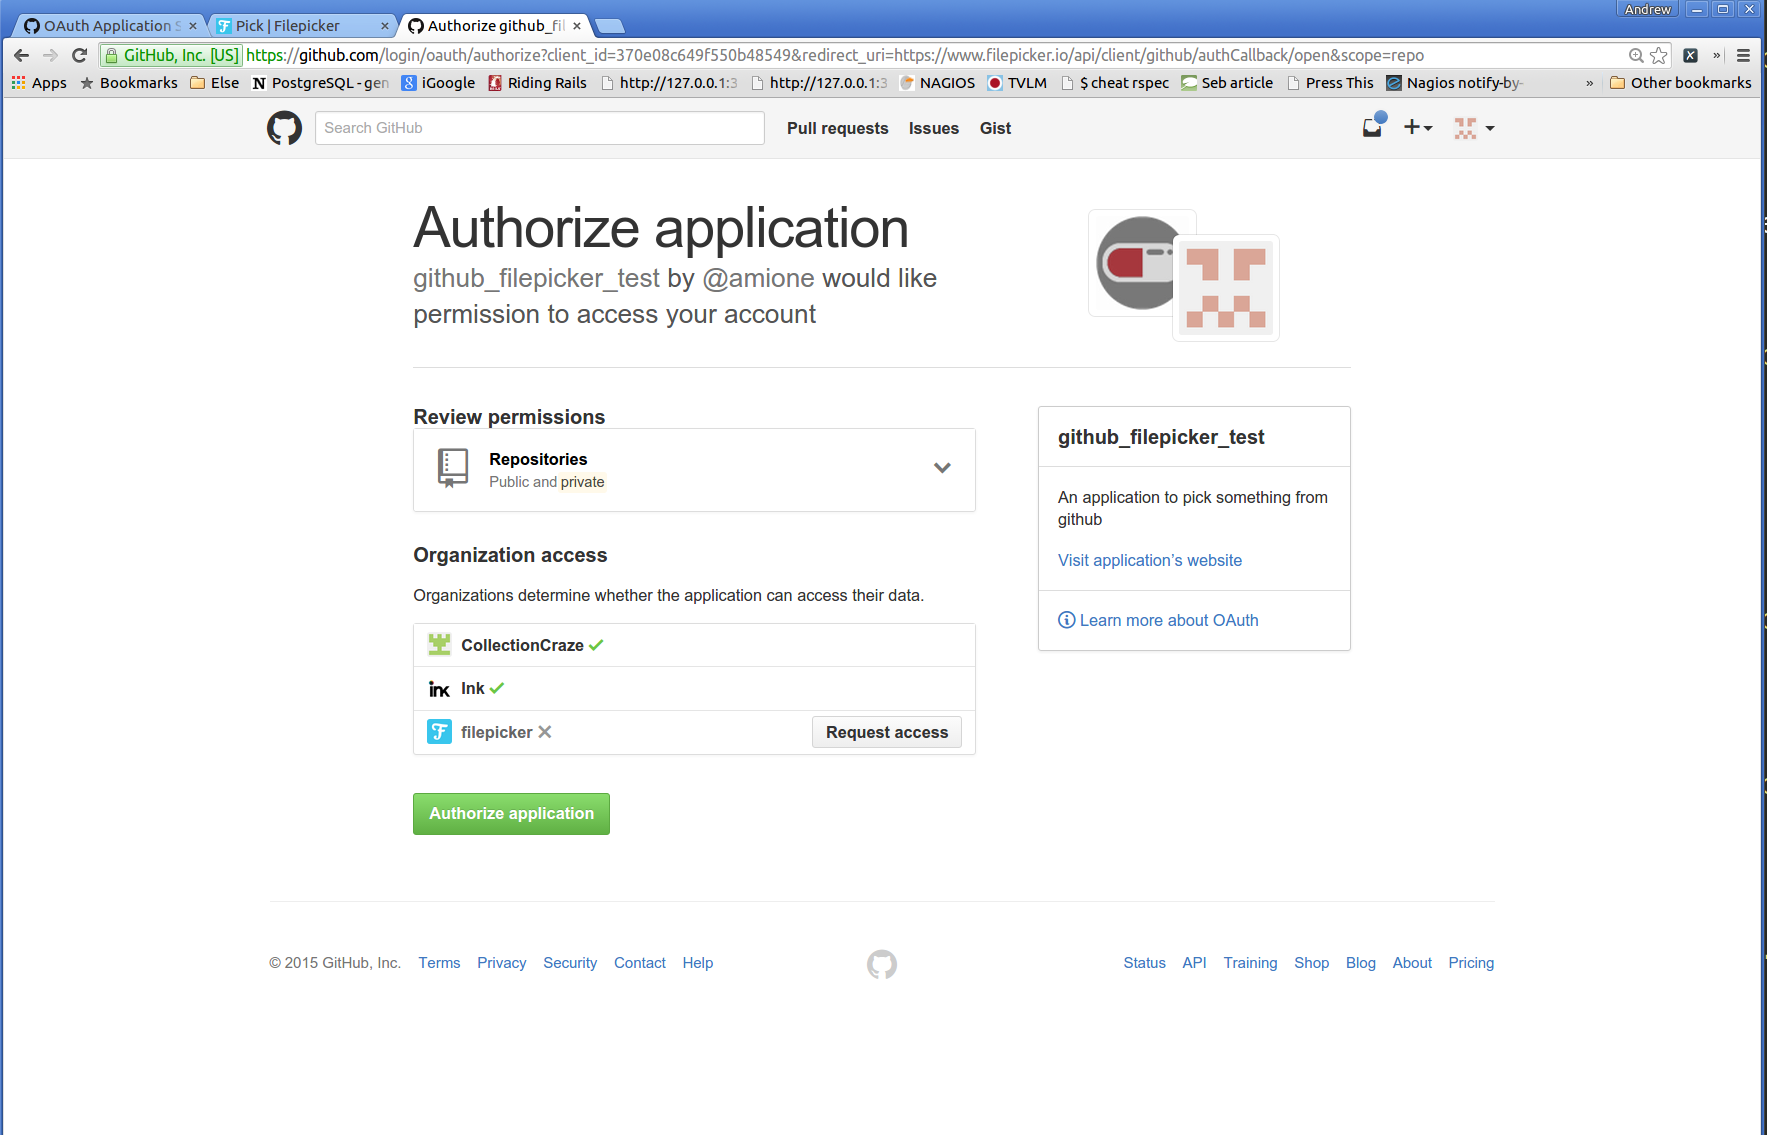 authorize the connection request for your new application